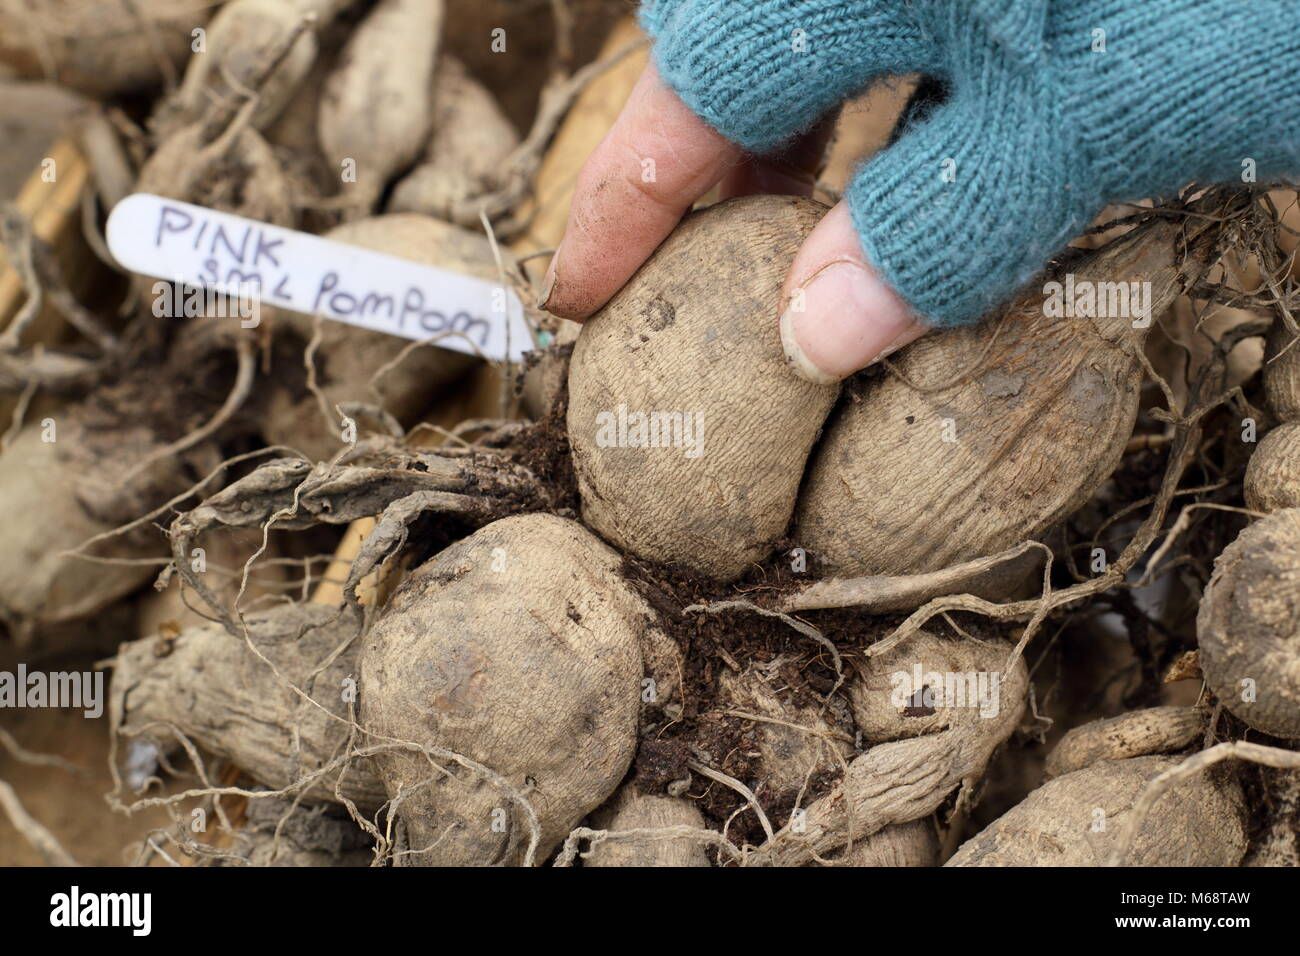 Checking dahlia tubers for rot during over winter storage, UK - Stock Image